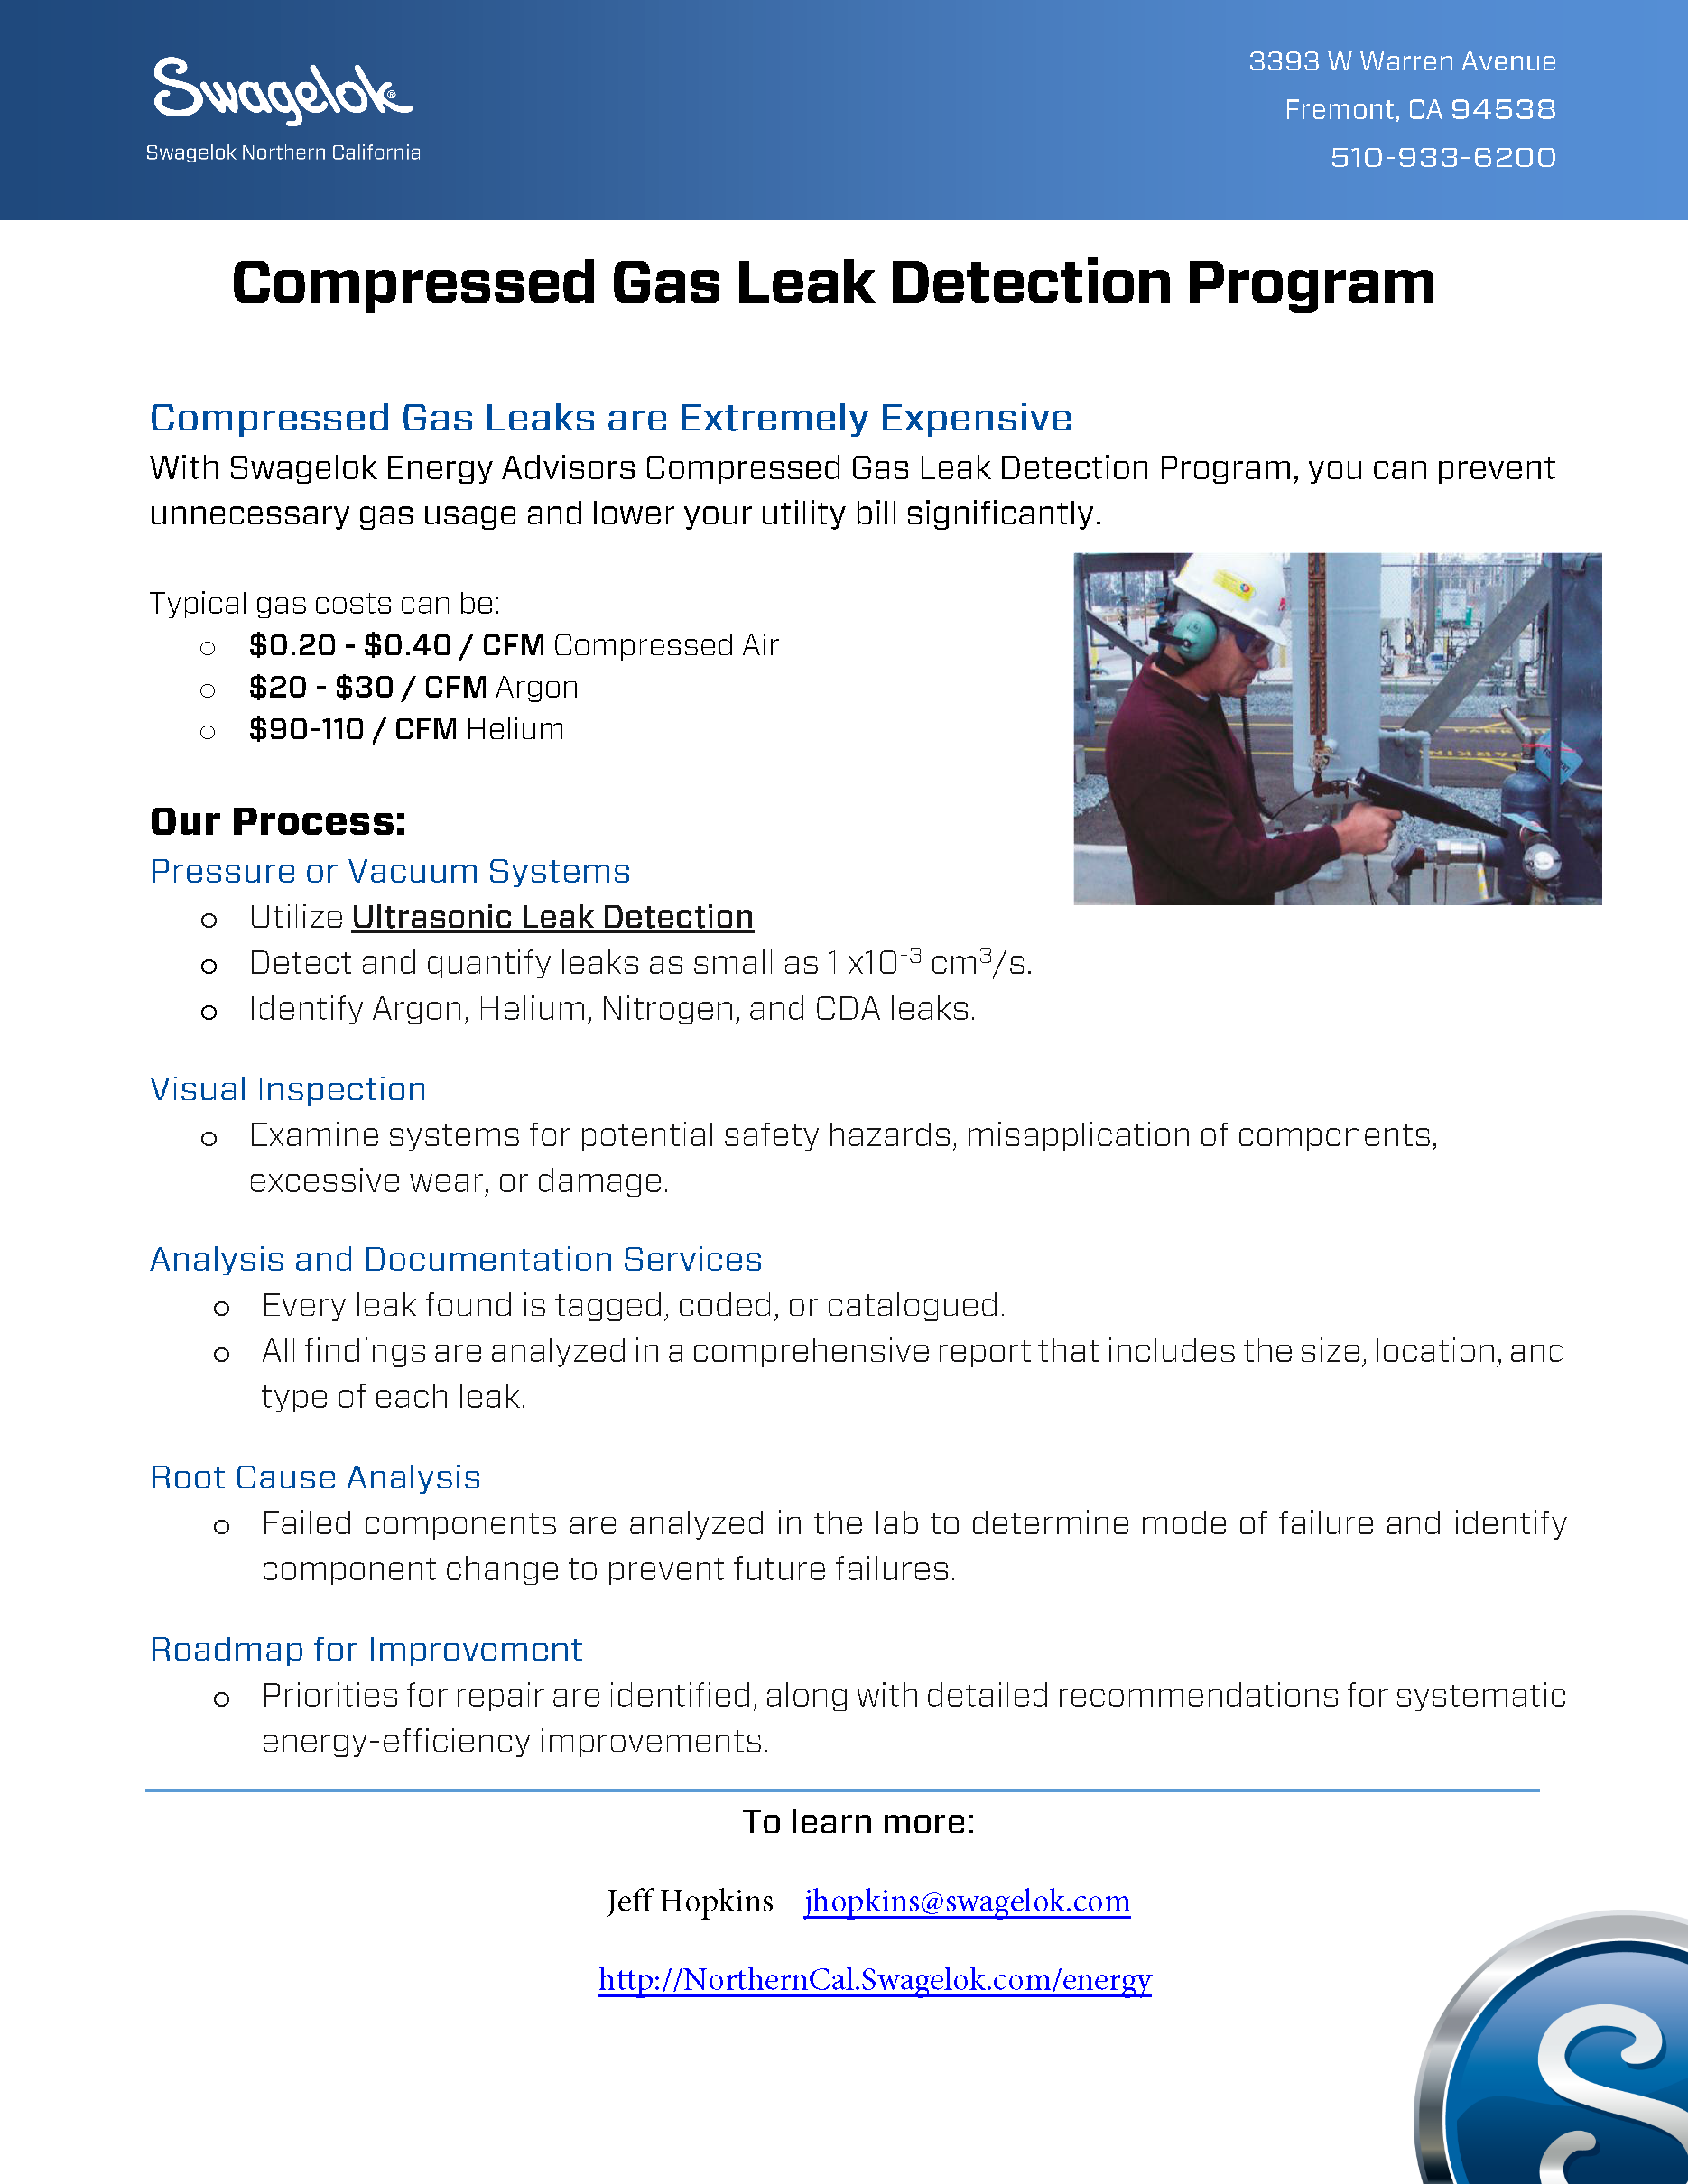 Swagelok-Compressed-Gas-Leak-Detection-Program.png